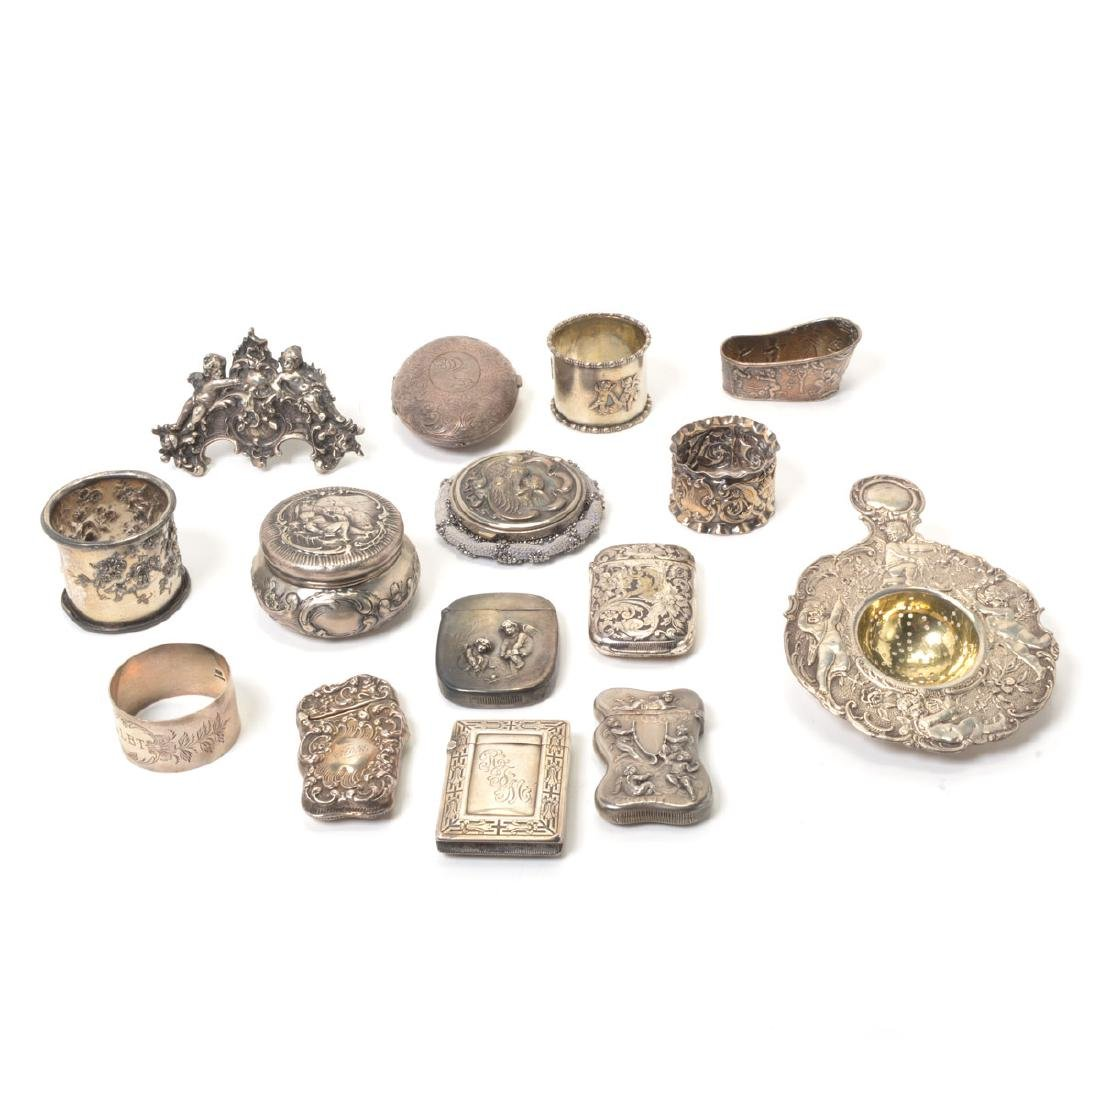 Collection of Silver Personal Articles in the Rococo